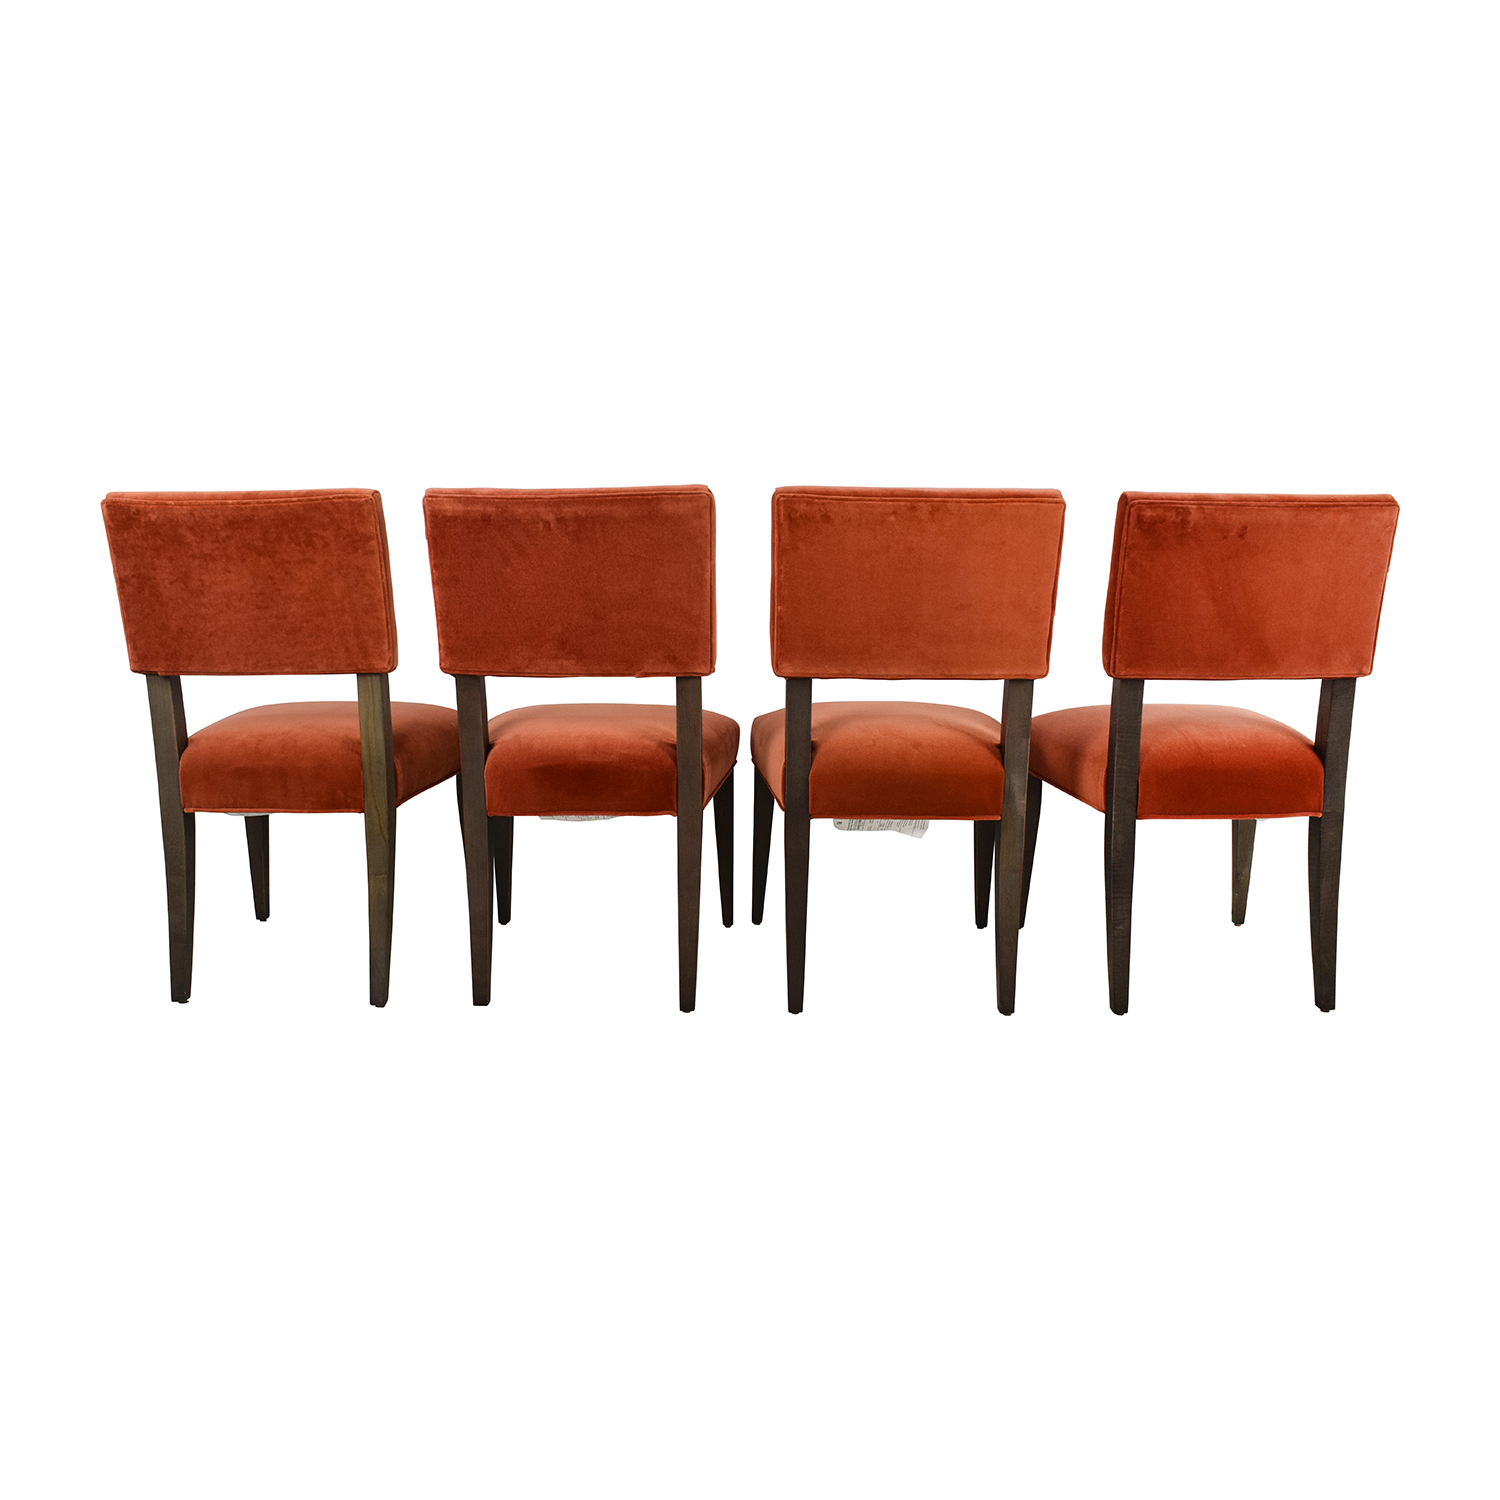 Buy crate barrel living room chairs and living room chairs used Crate and barrel living room chairs